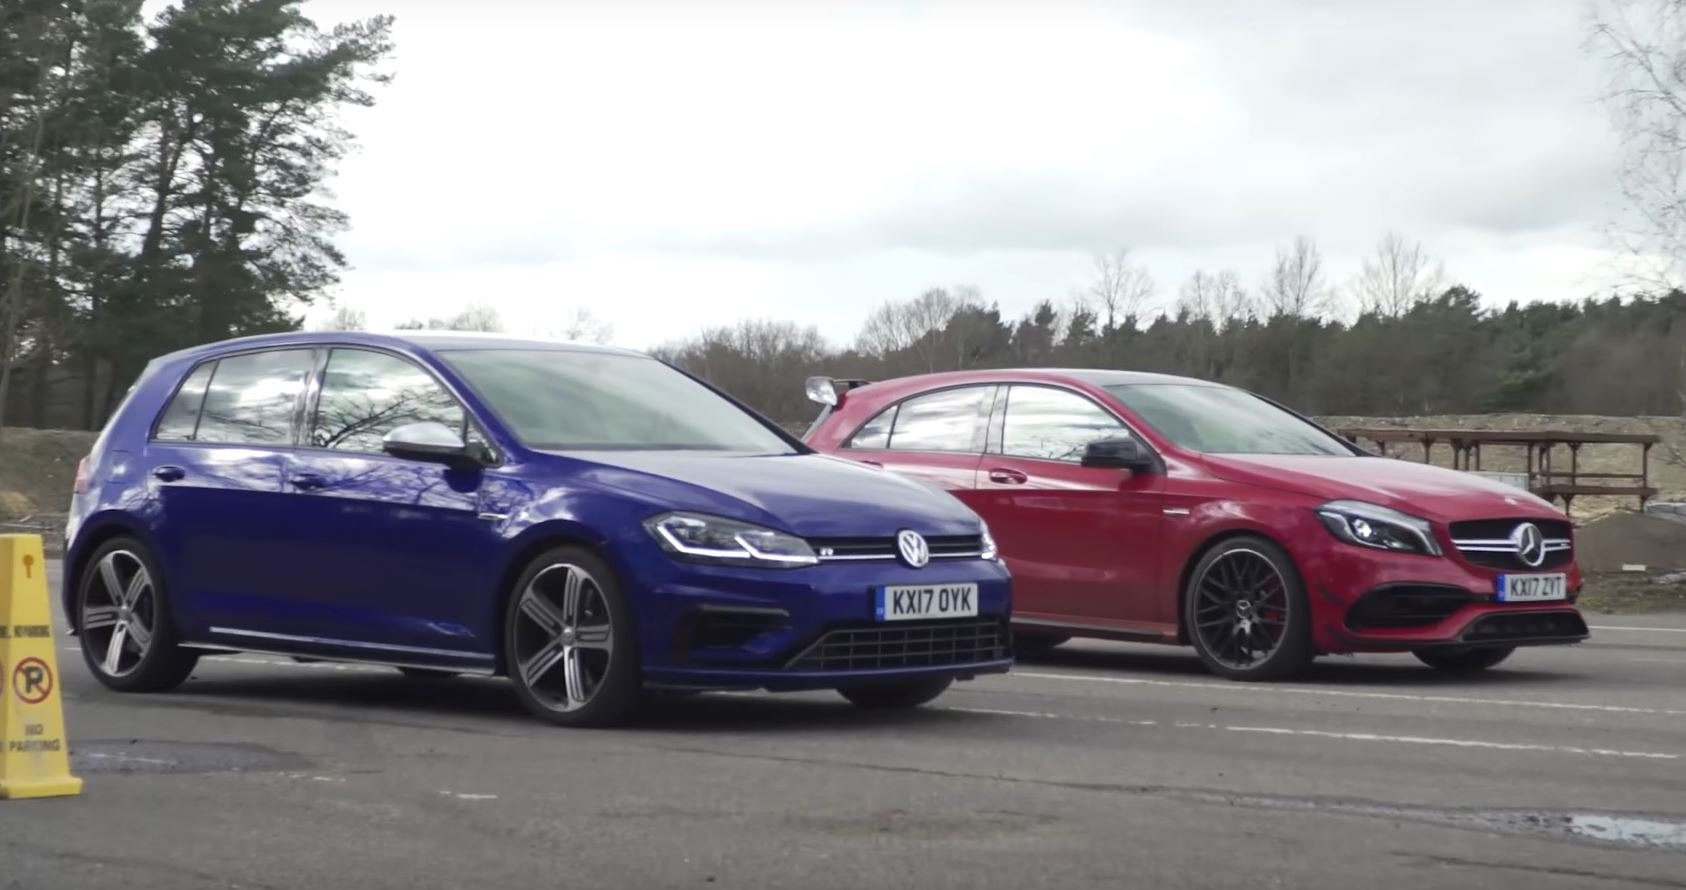 2017 golf r gets to take on mercedes amg a45 once again due to facelift autoevolution. Black Bedroom Furniture Sets. Home Design Ideas